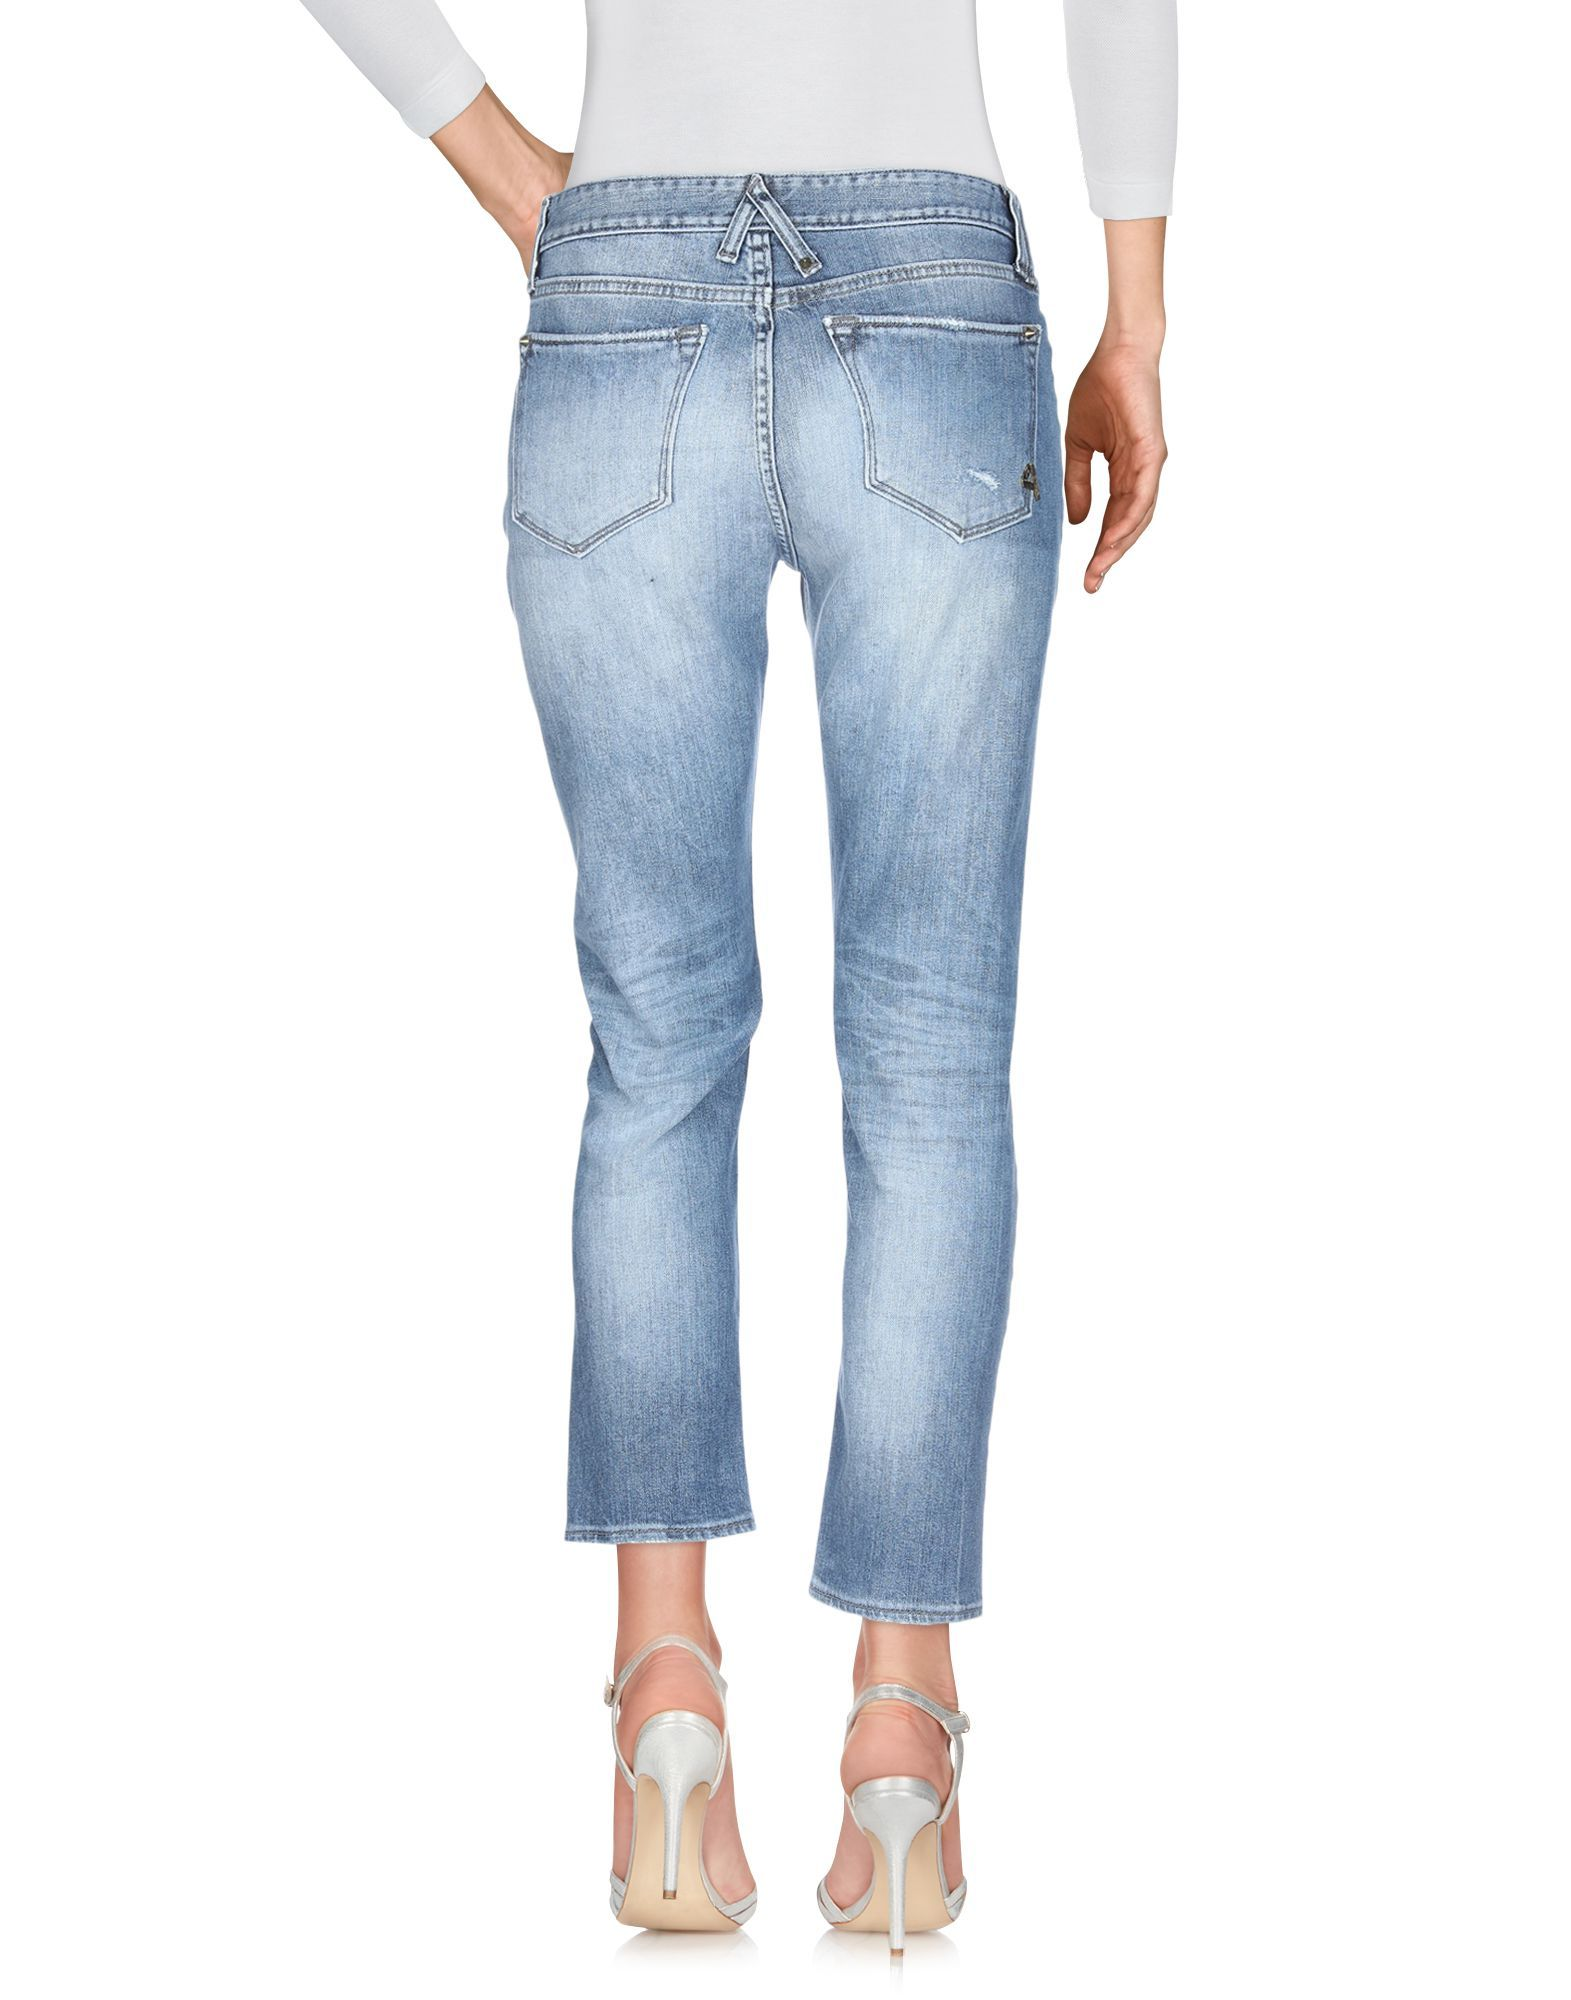 Cycle Blue Distressed Cotton Jeans